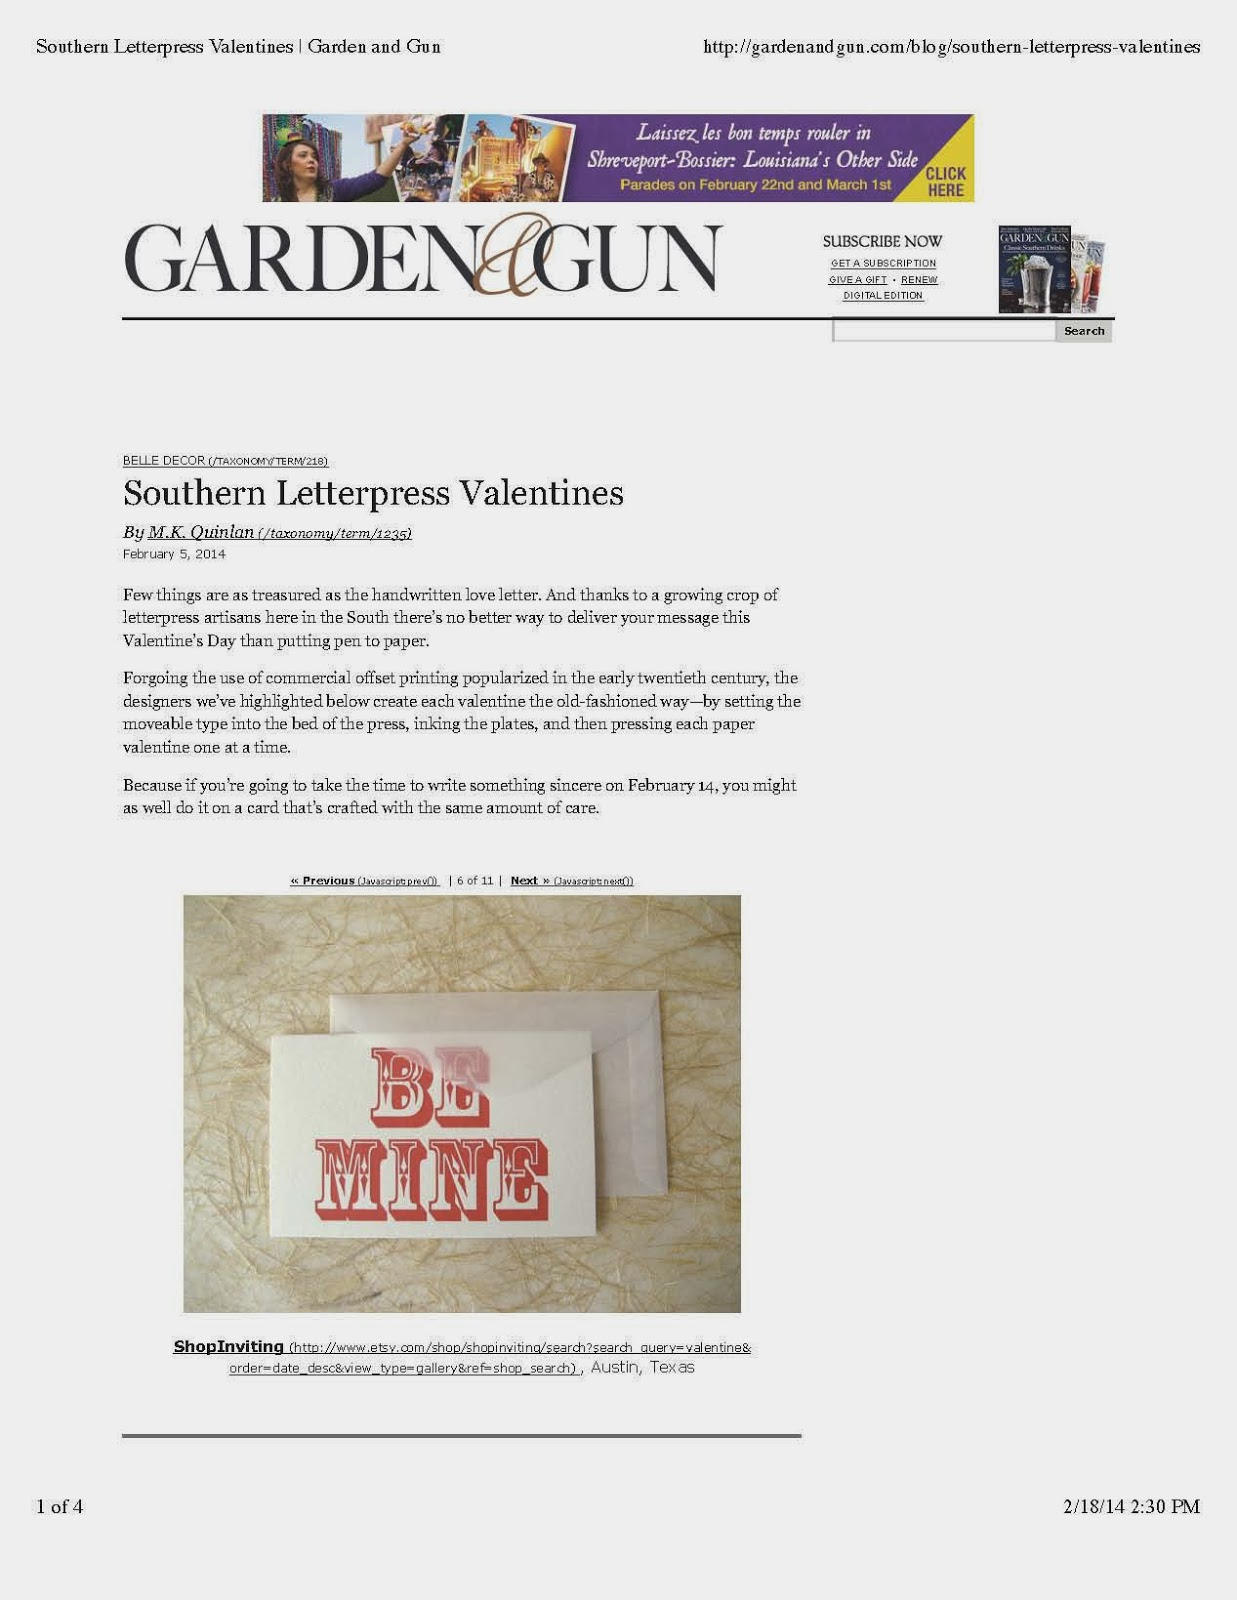 Garden and Gun Daily Shot blog post southern letterpress printers valentine card inviting austin